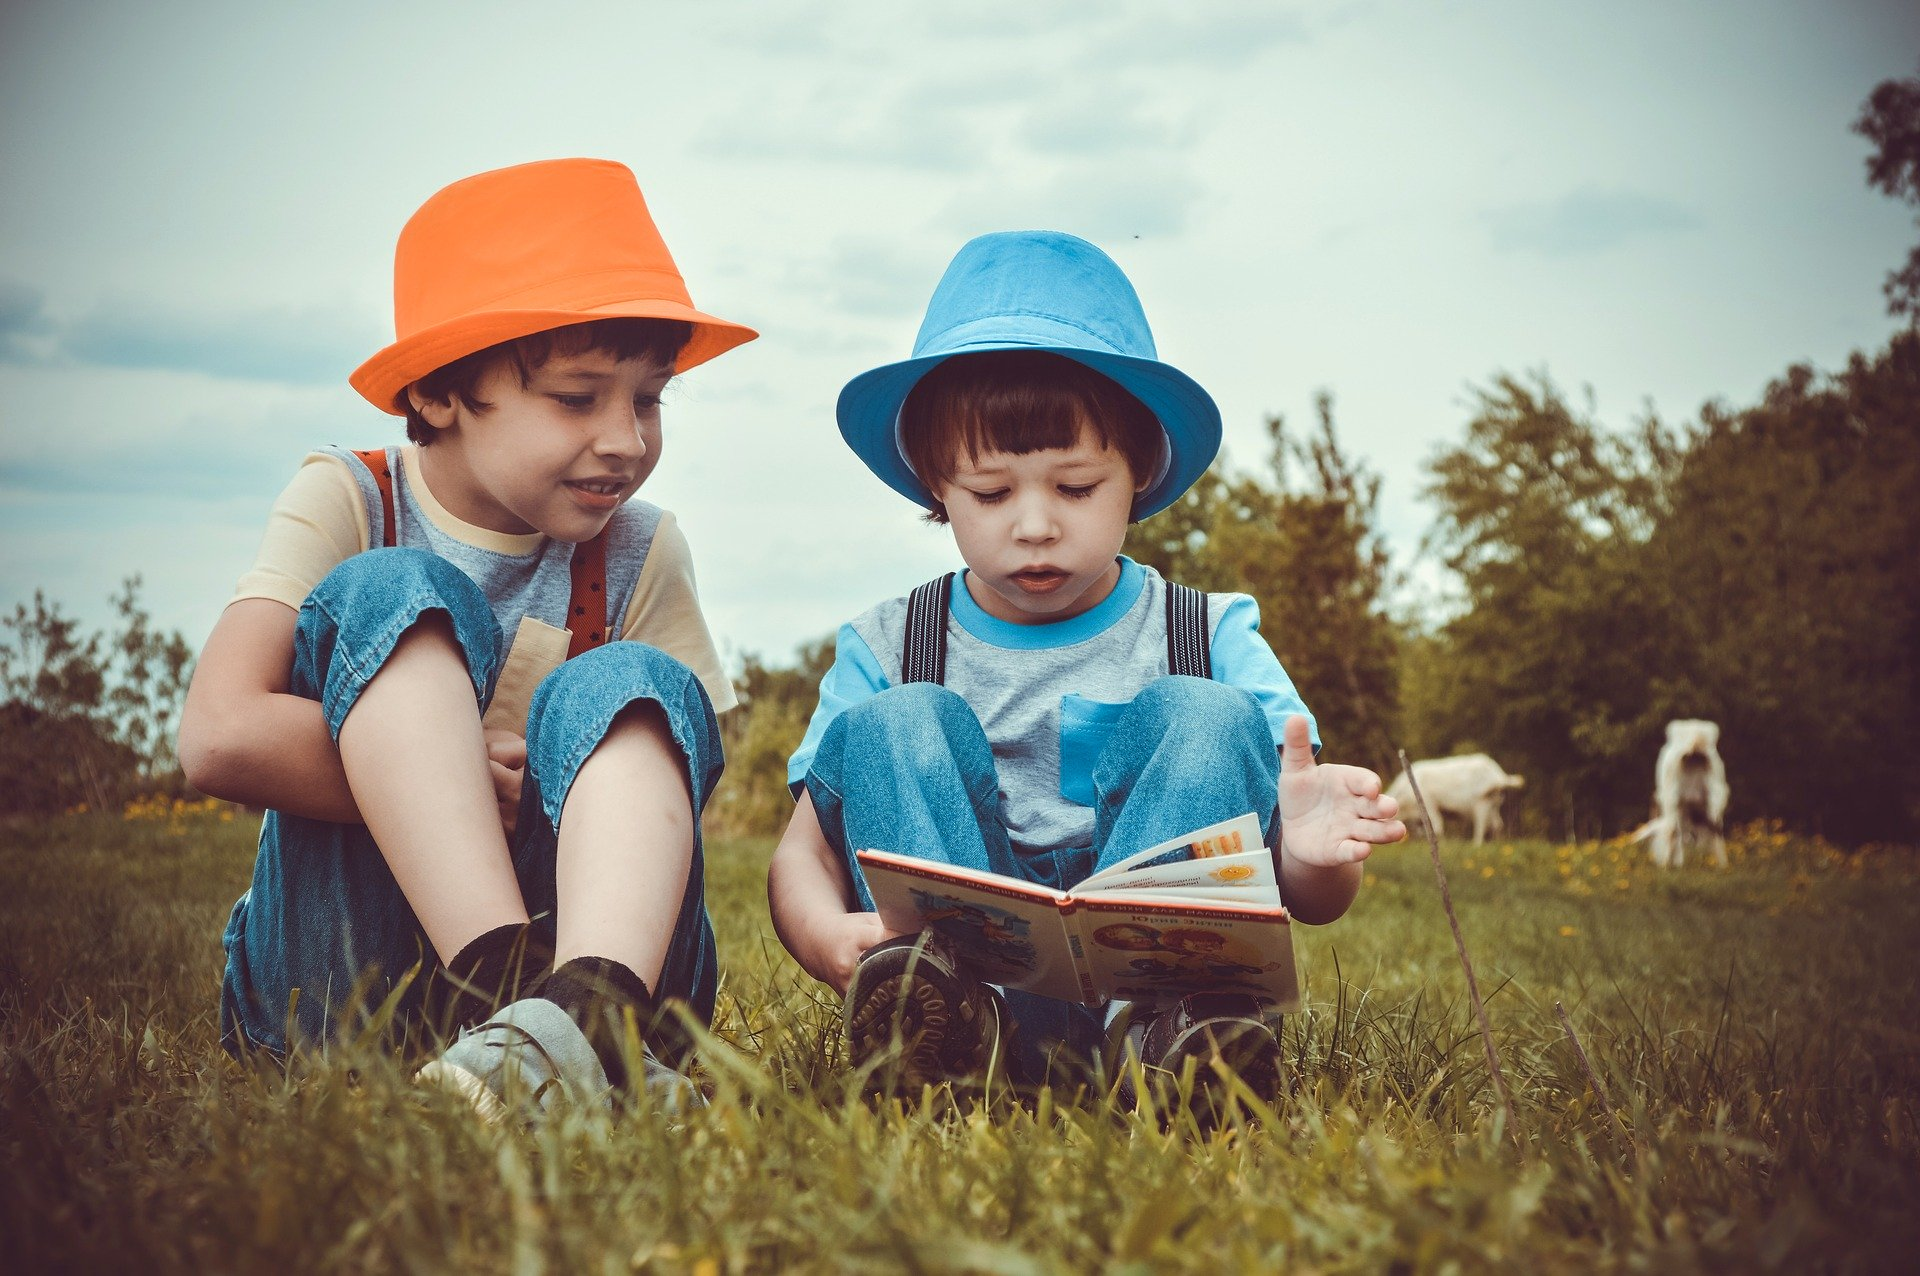 boys reading a book together outside - Dolly Parton's Imagination Library provides books to kids